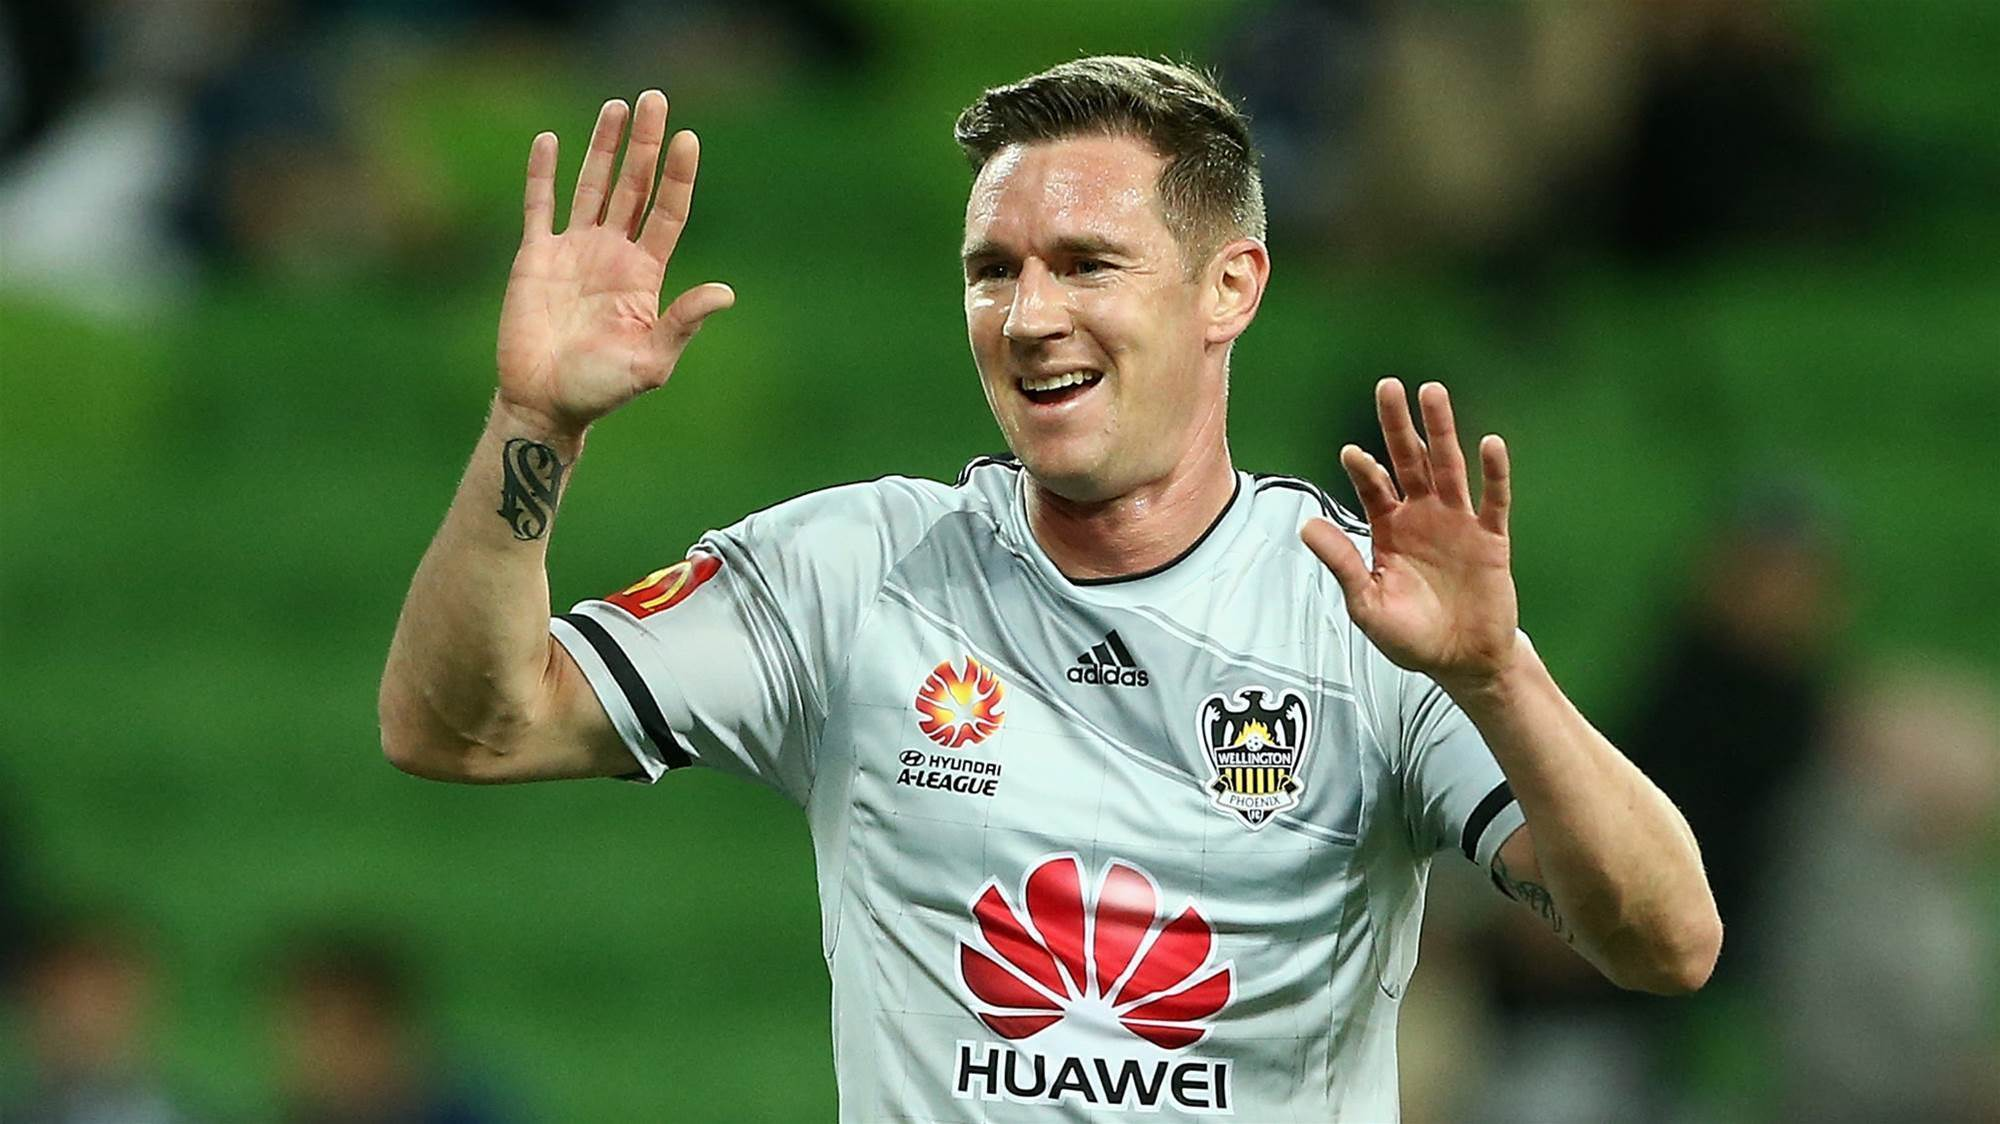 A-league legend Shane Smeltz calls time